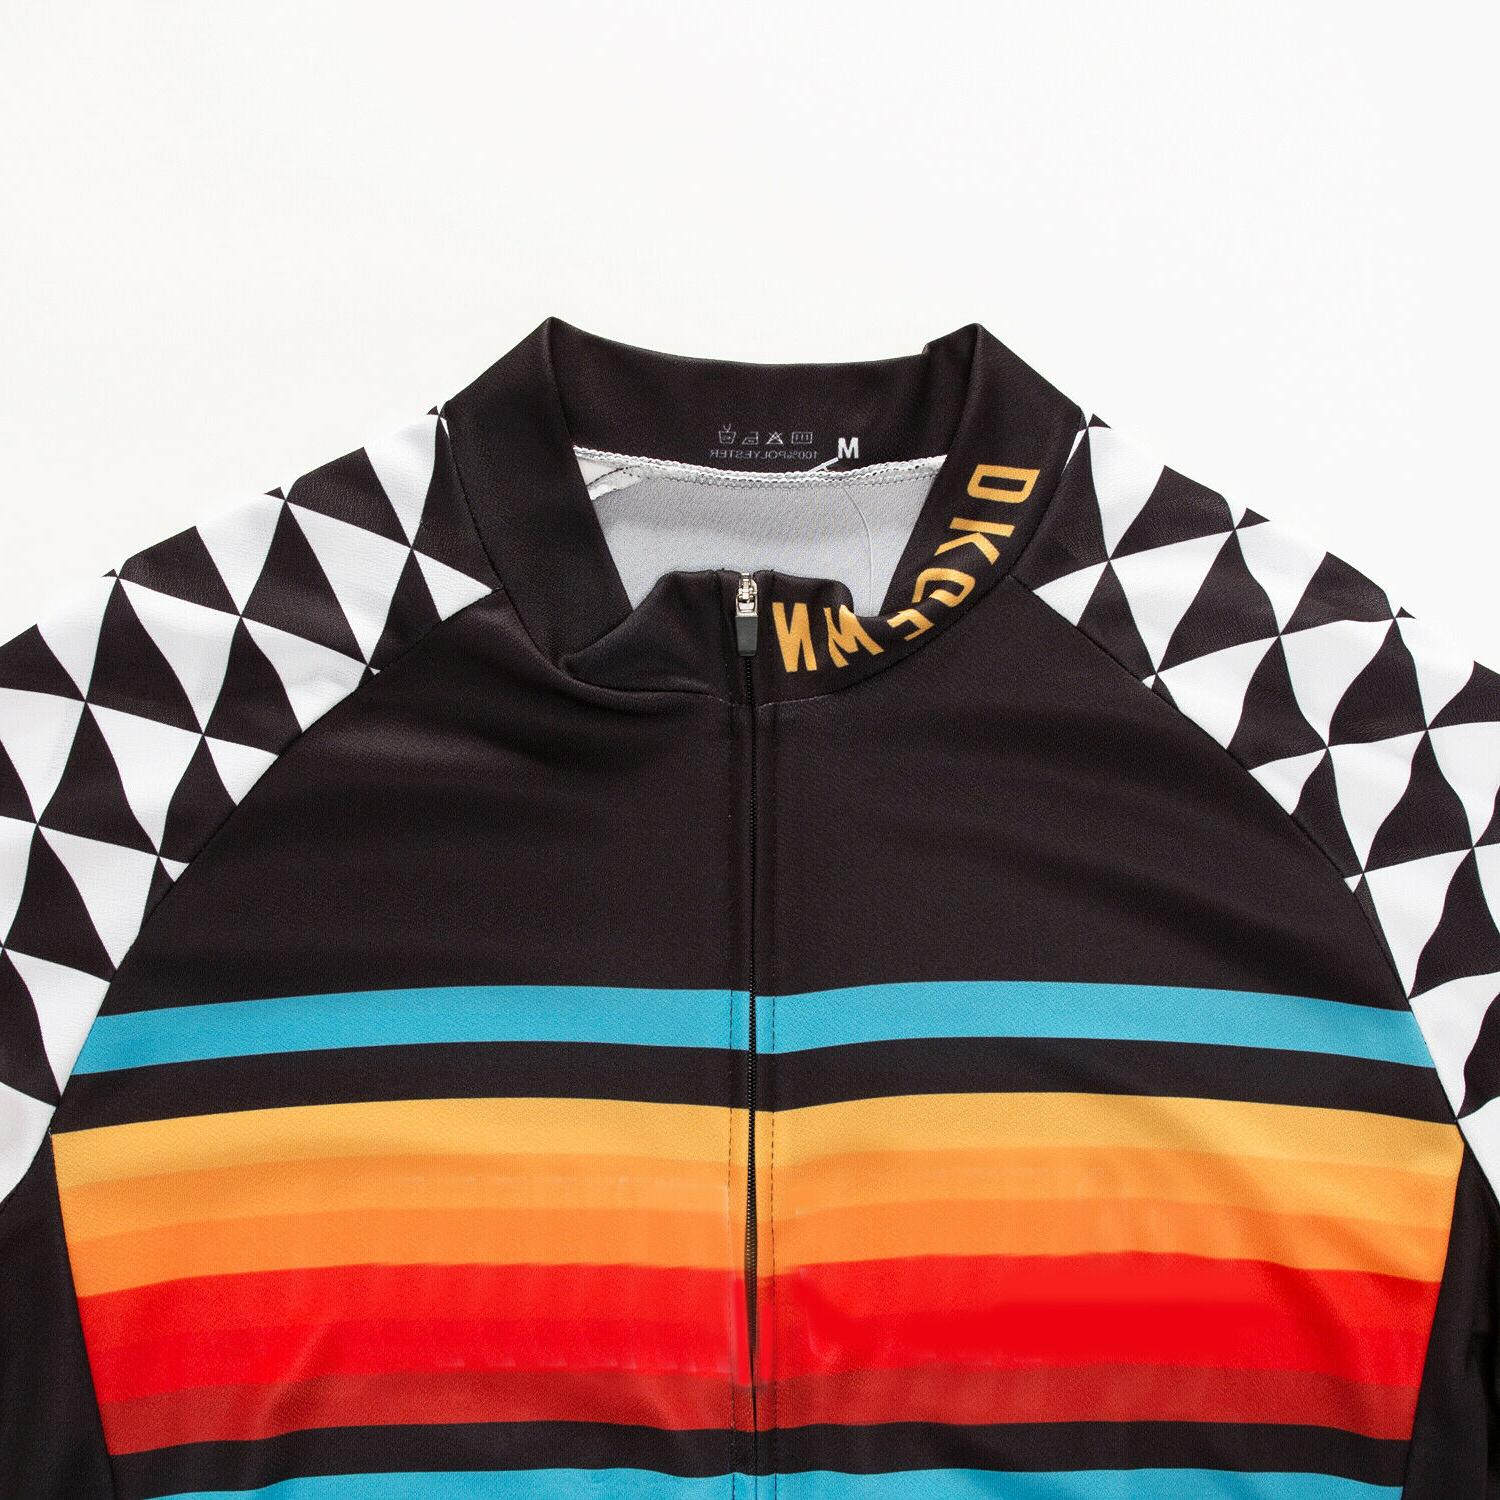 New Bike Road Jerseys Short Tops Outfits